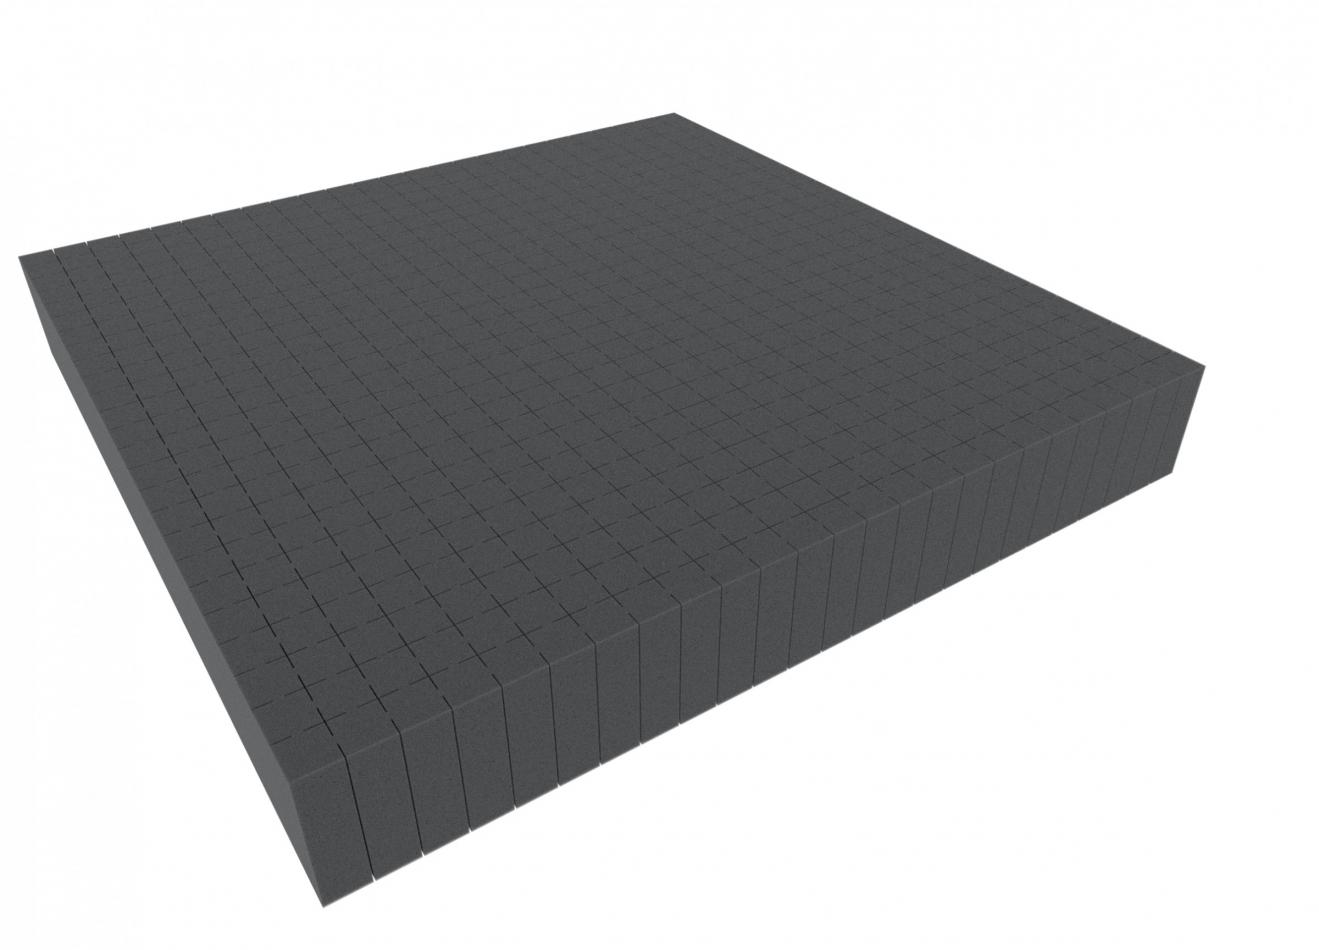 1000 mm x 1000 mm x 70 mm - Raster 20 mm - Pick and Pluck / Pre-Cubed foam tray